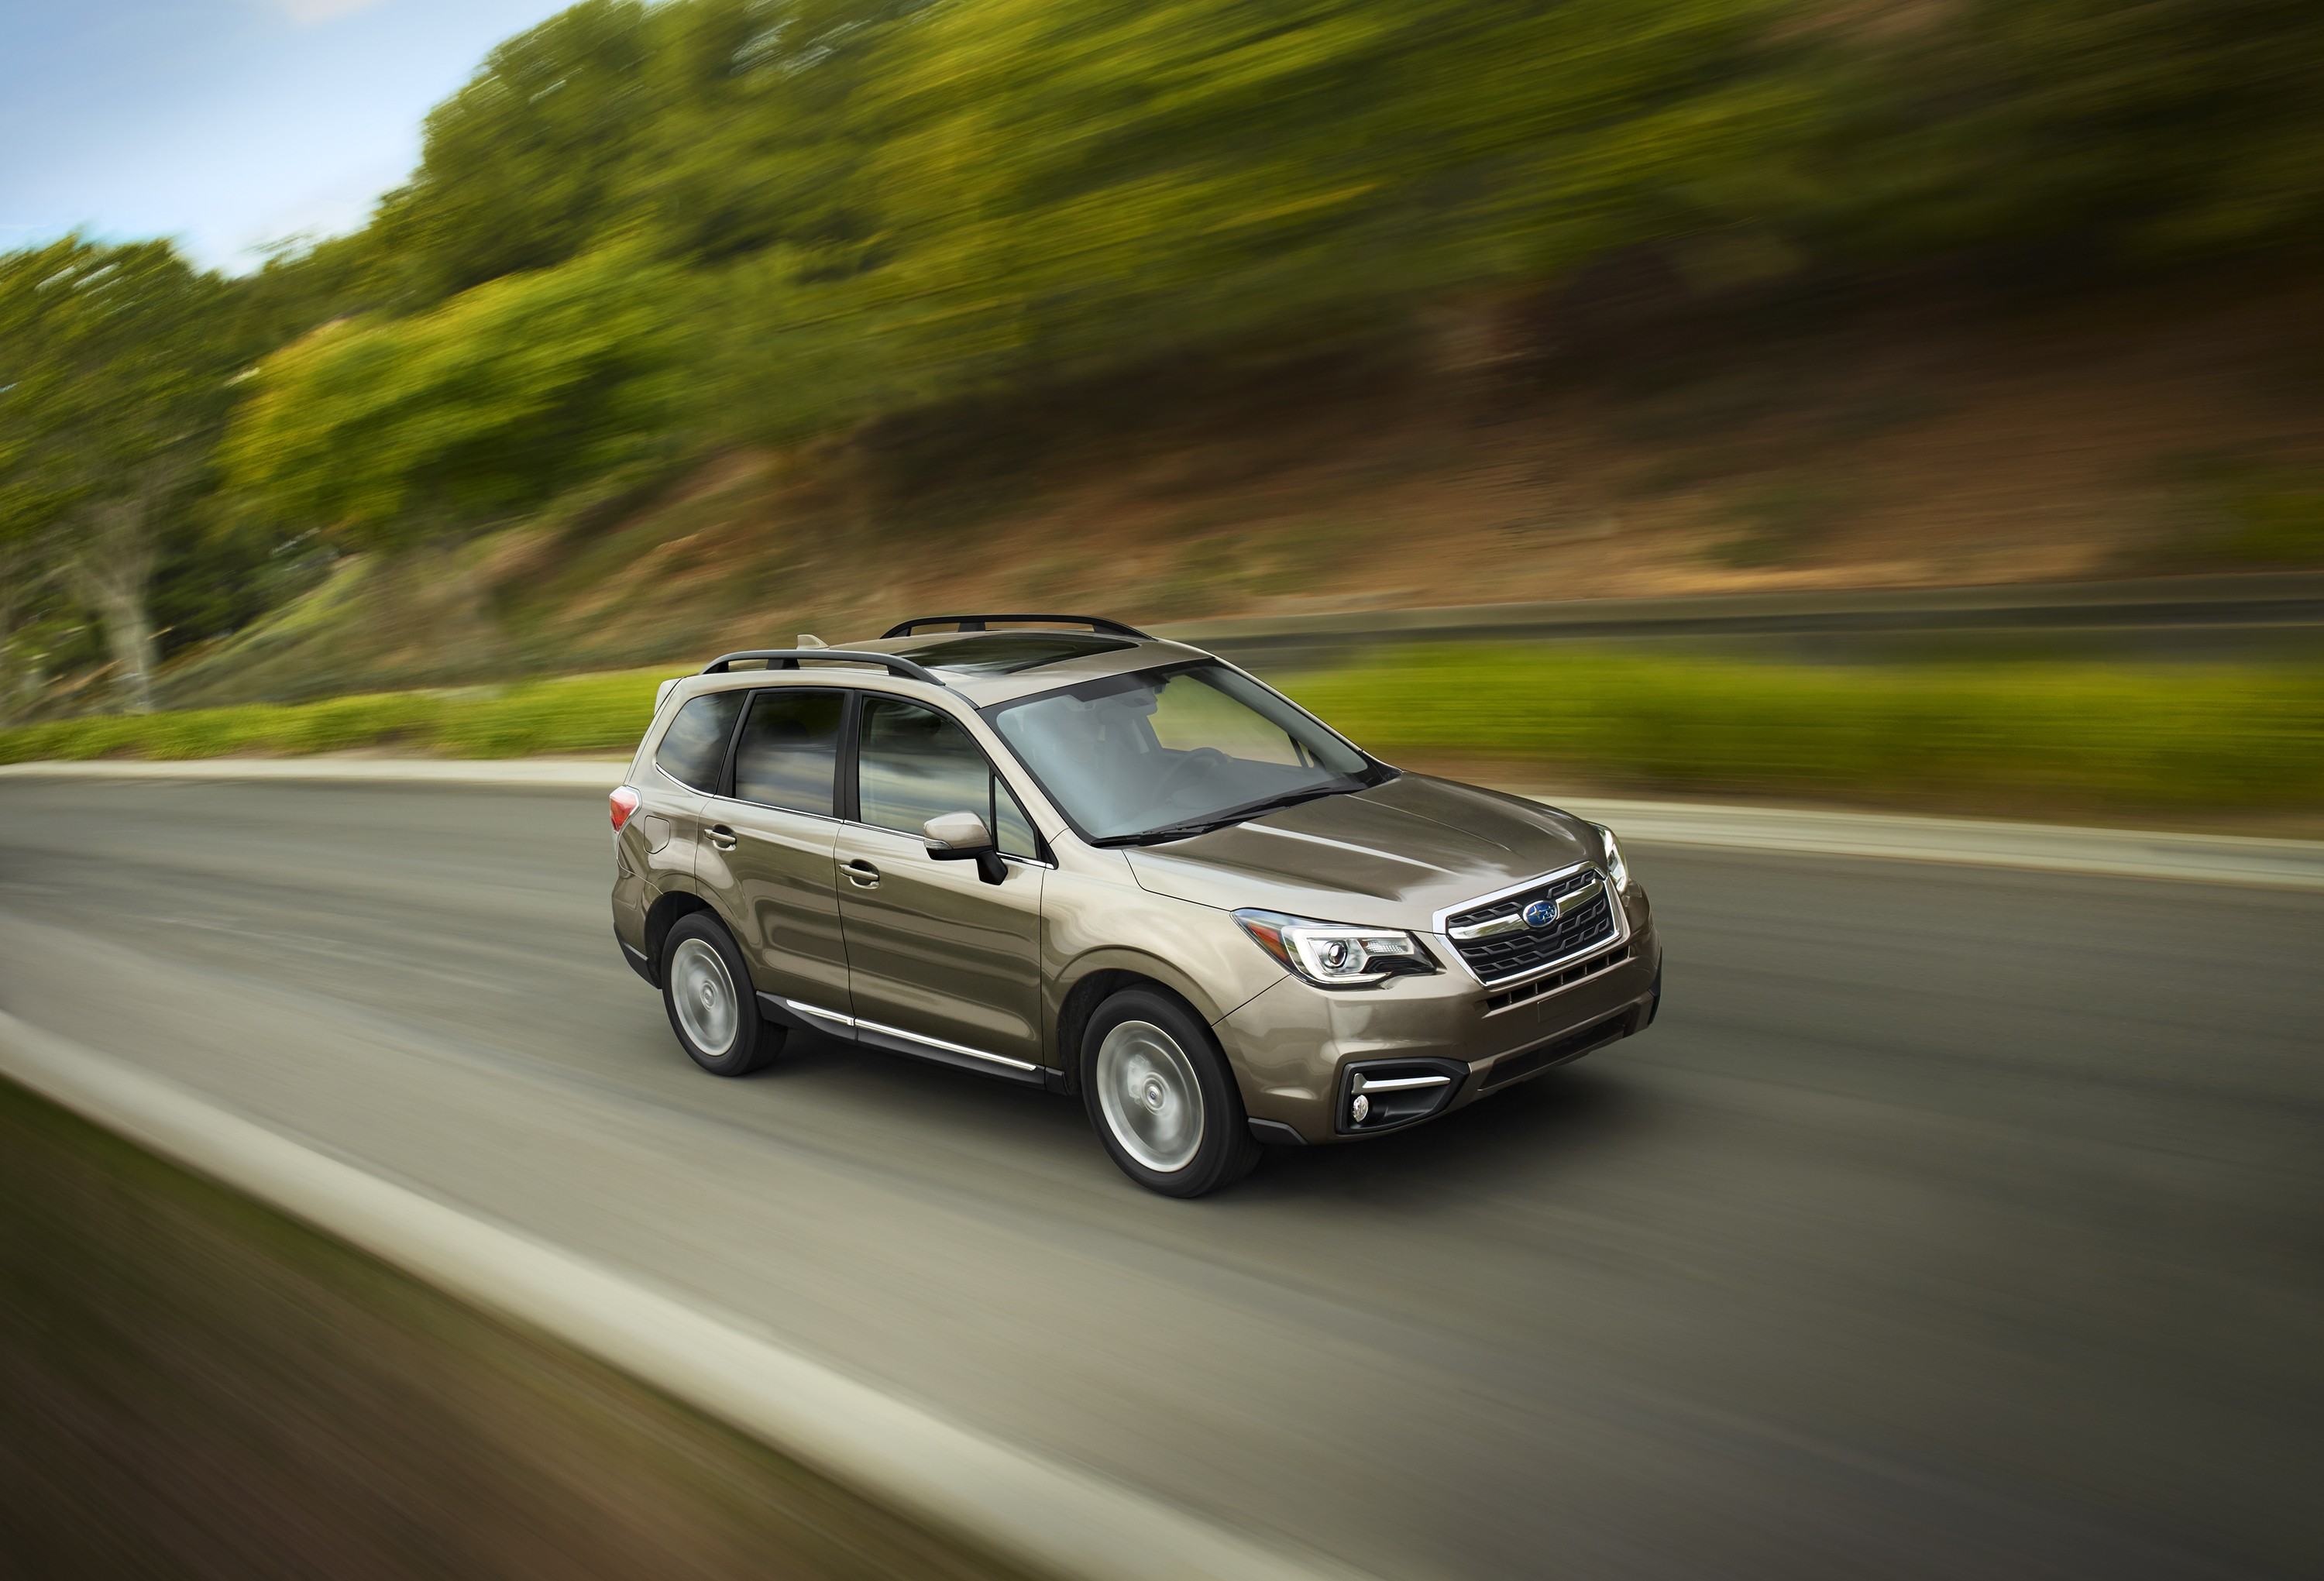 Consumer reports names top 10 car recommendations of the year